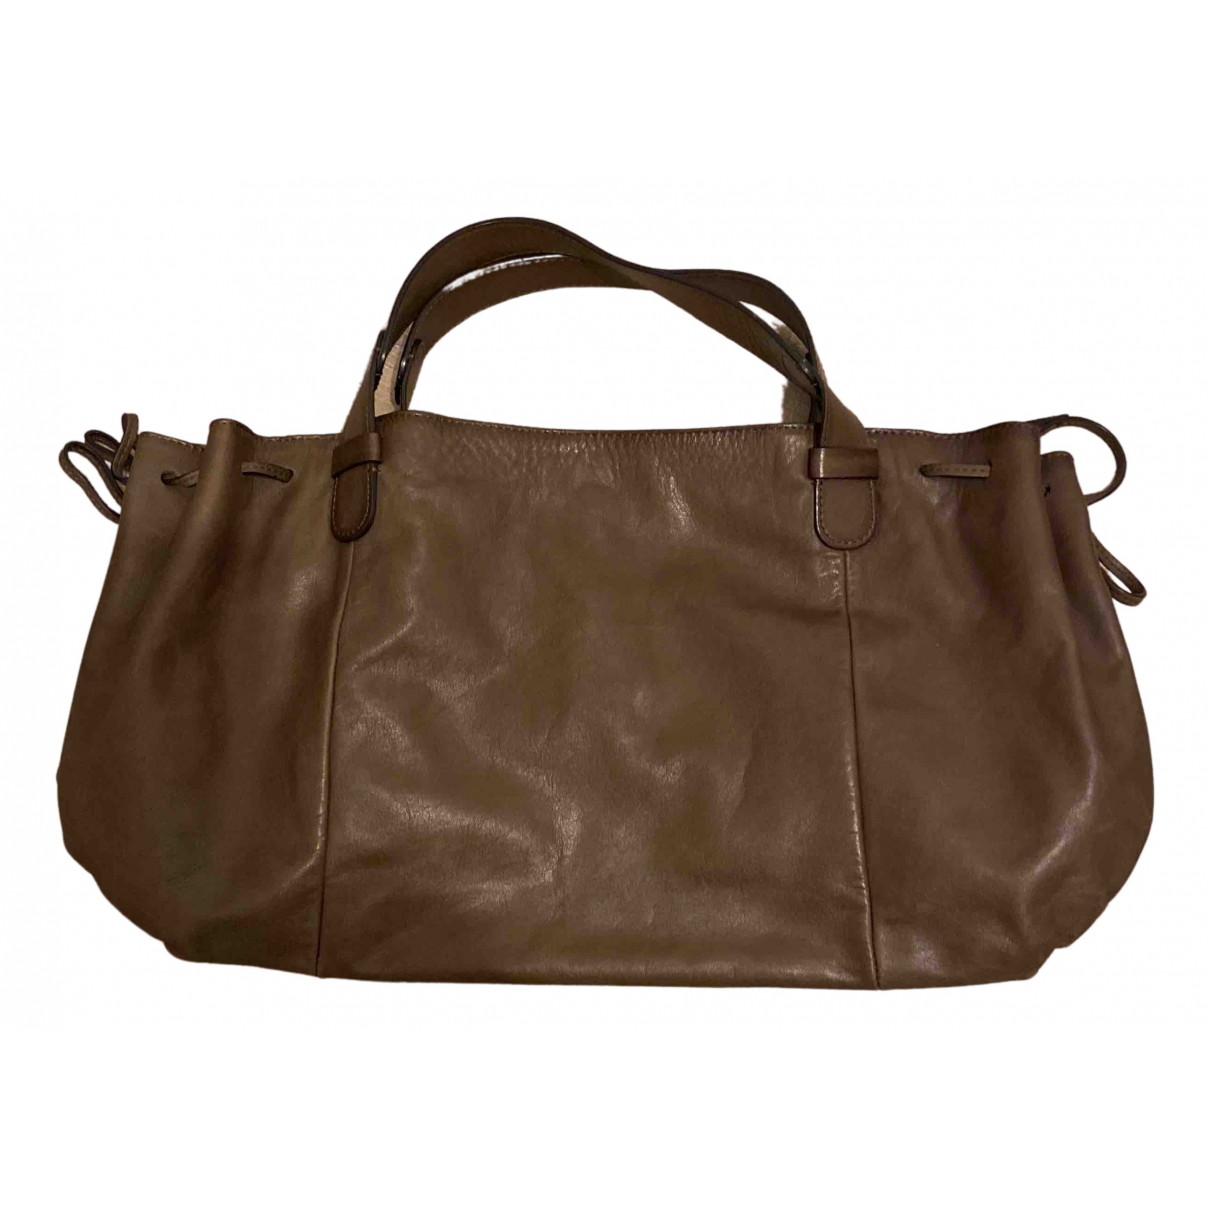 Gerard Darel 24h Brown Leather handbag for Women N